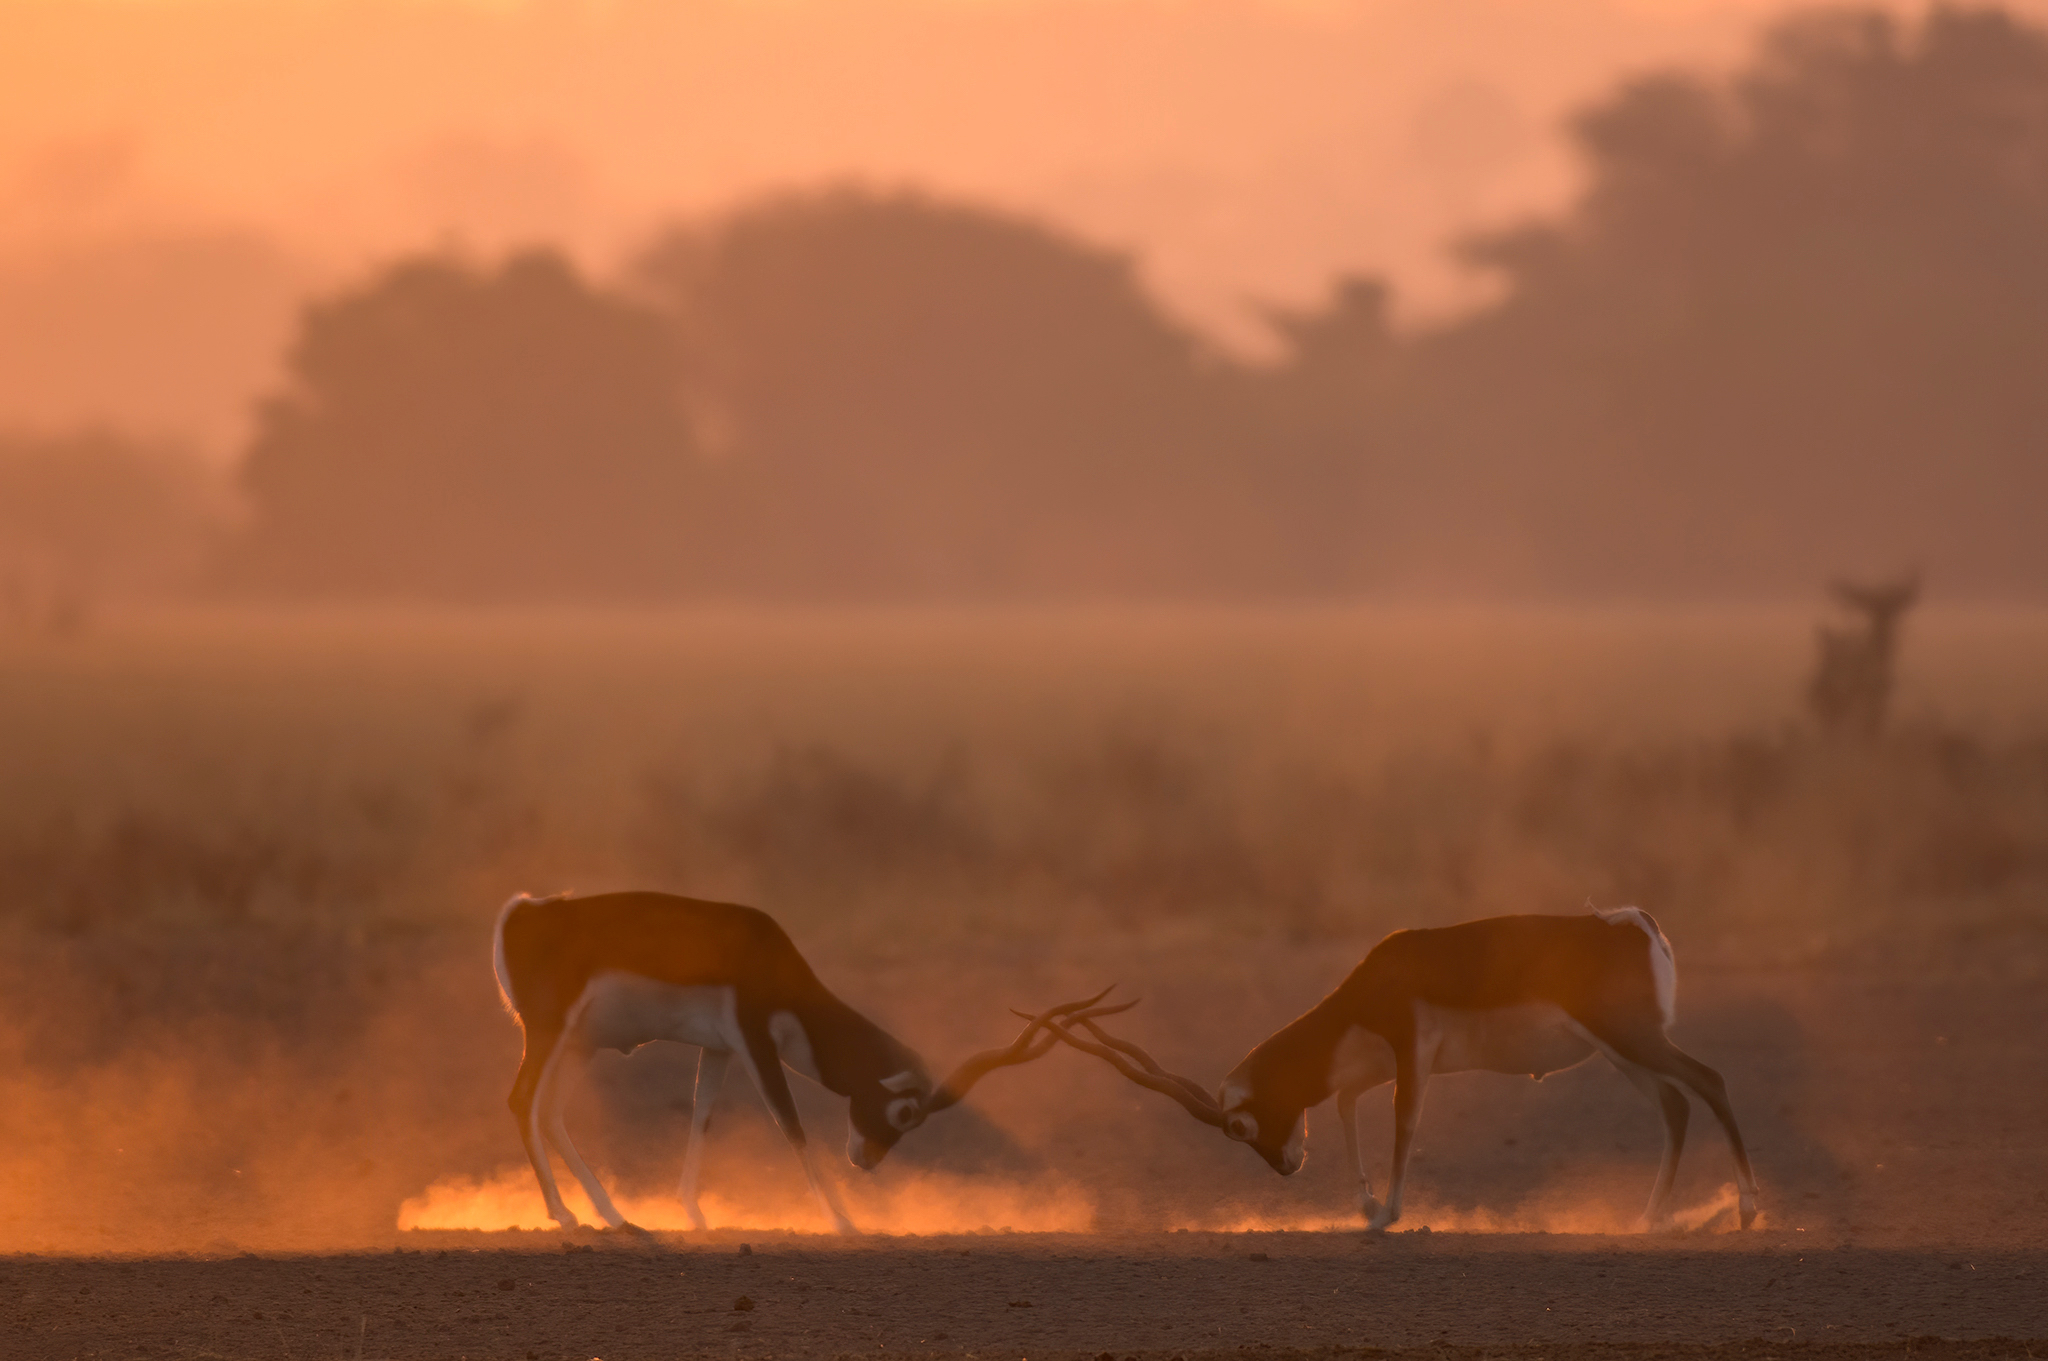 Rival blackbucks lock horns, jostle, and try to gore each other to take possession of a territory.